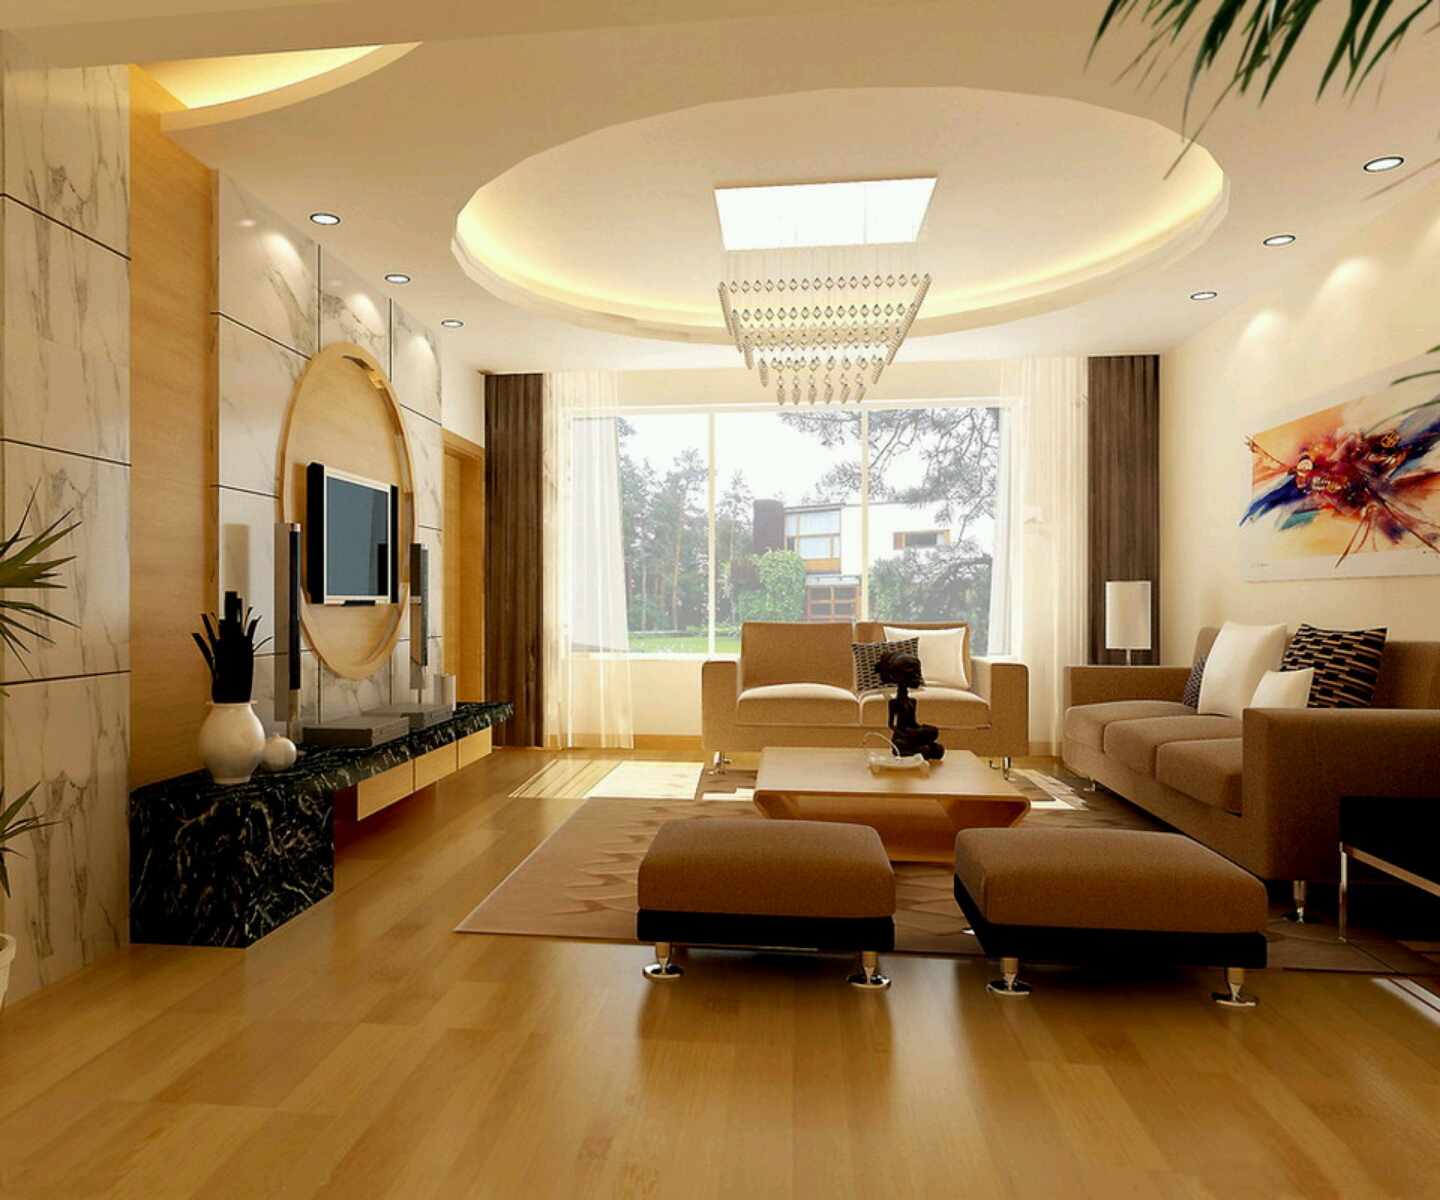 Modern interior decoration living rooms ceiling designs for Interior designs for lounge